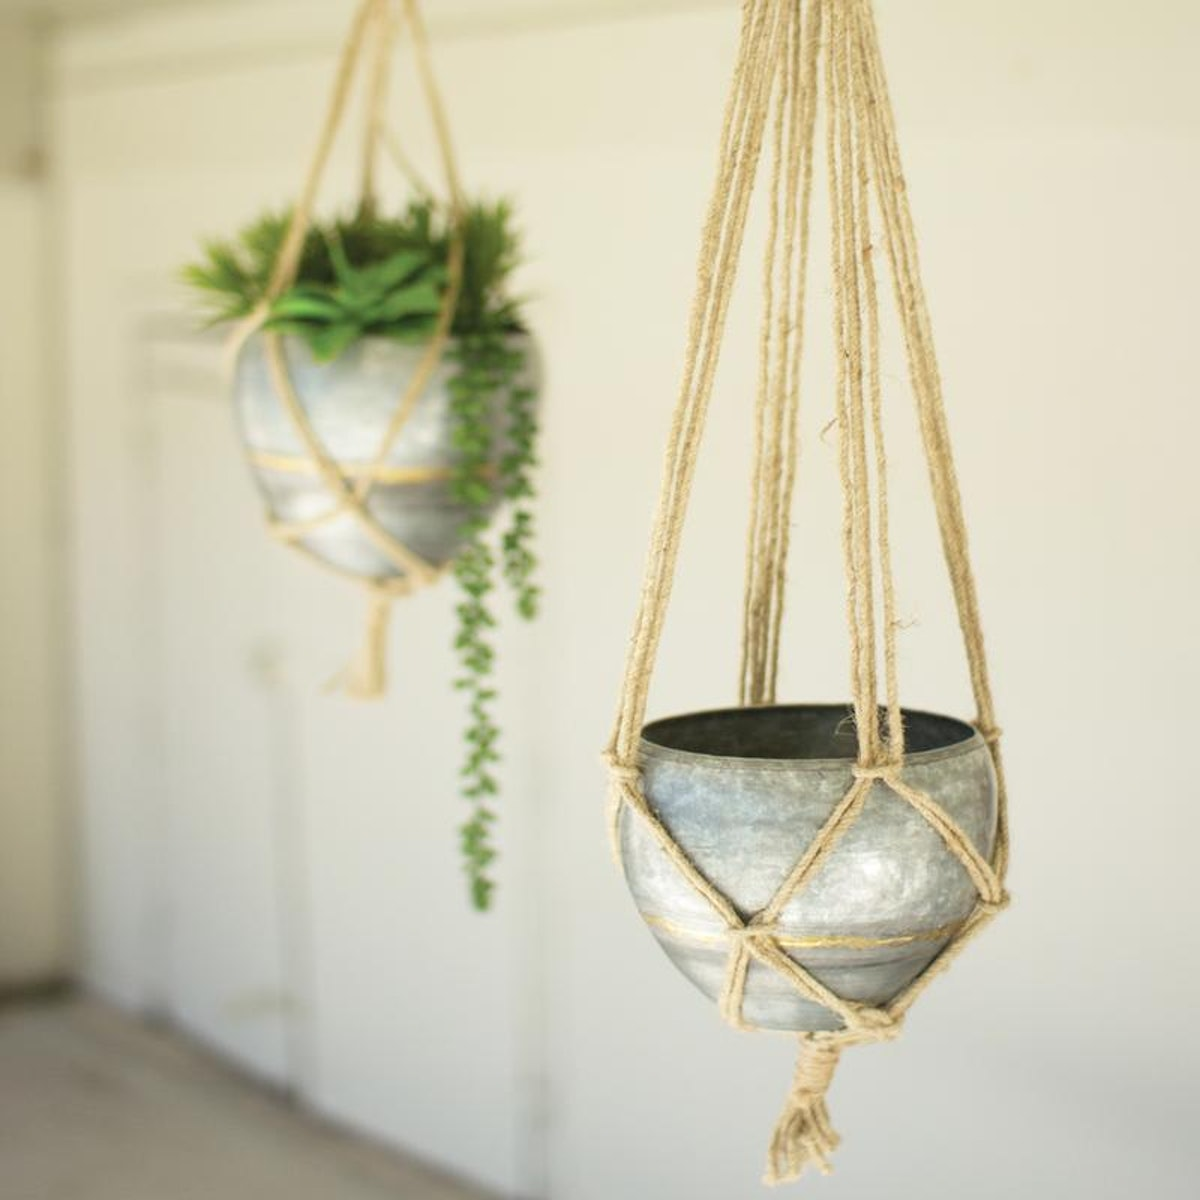 Jungalow Set of 2 Hanging Galvanized Planters With Jute Rope